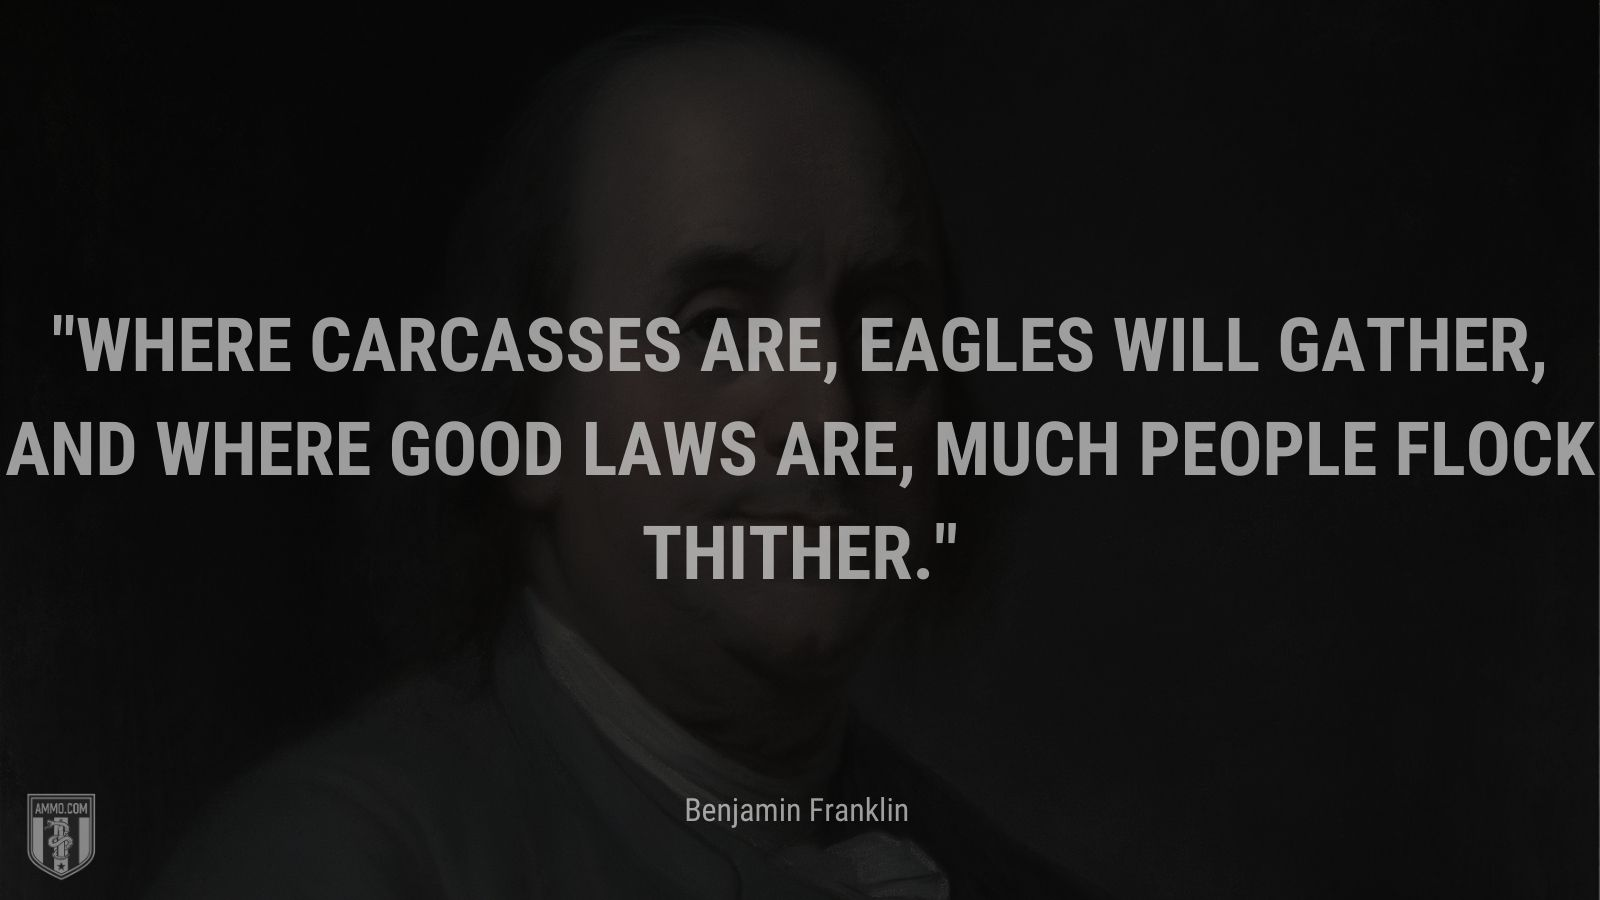 """""""Where carcasses are, eagles will gather, And where good laws are, much people flock thither."""" - Benjamin Franklin"""